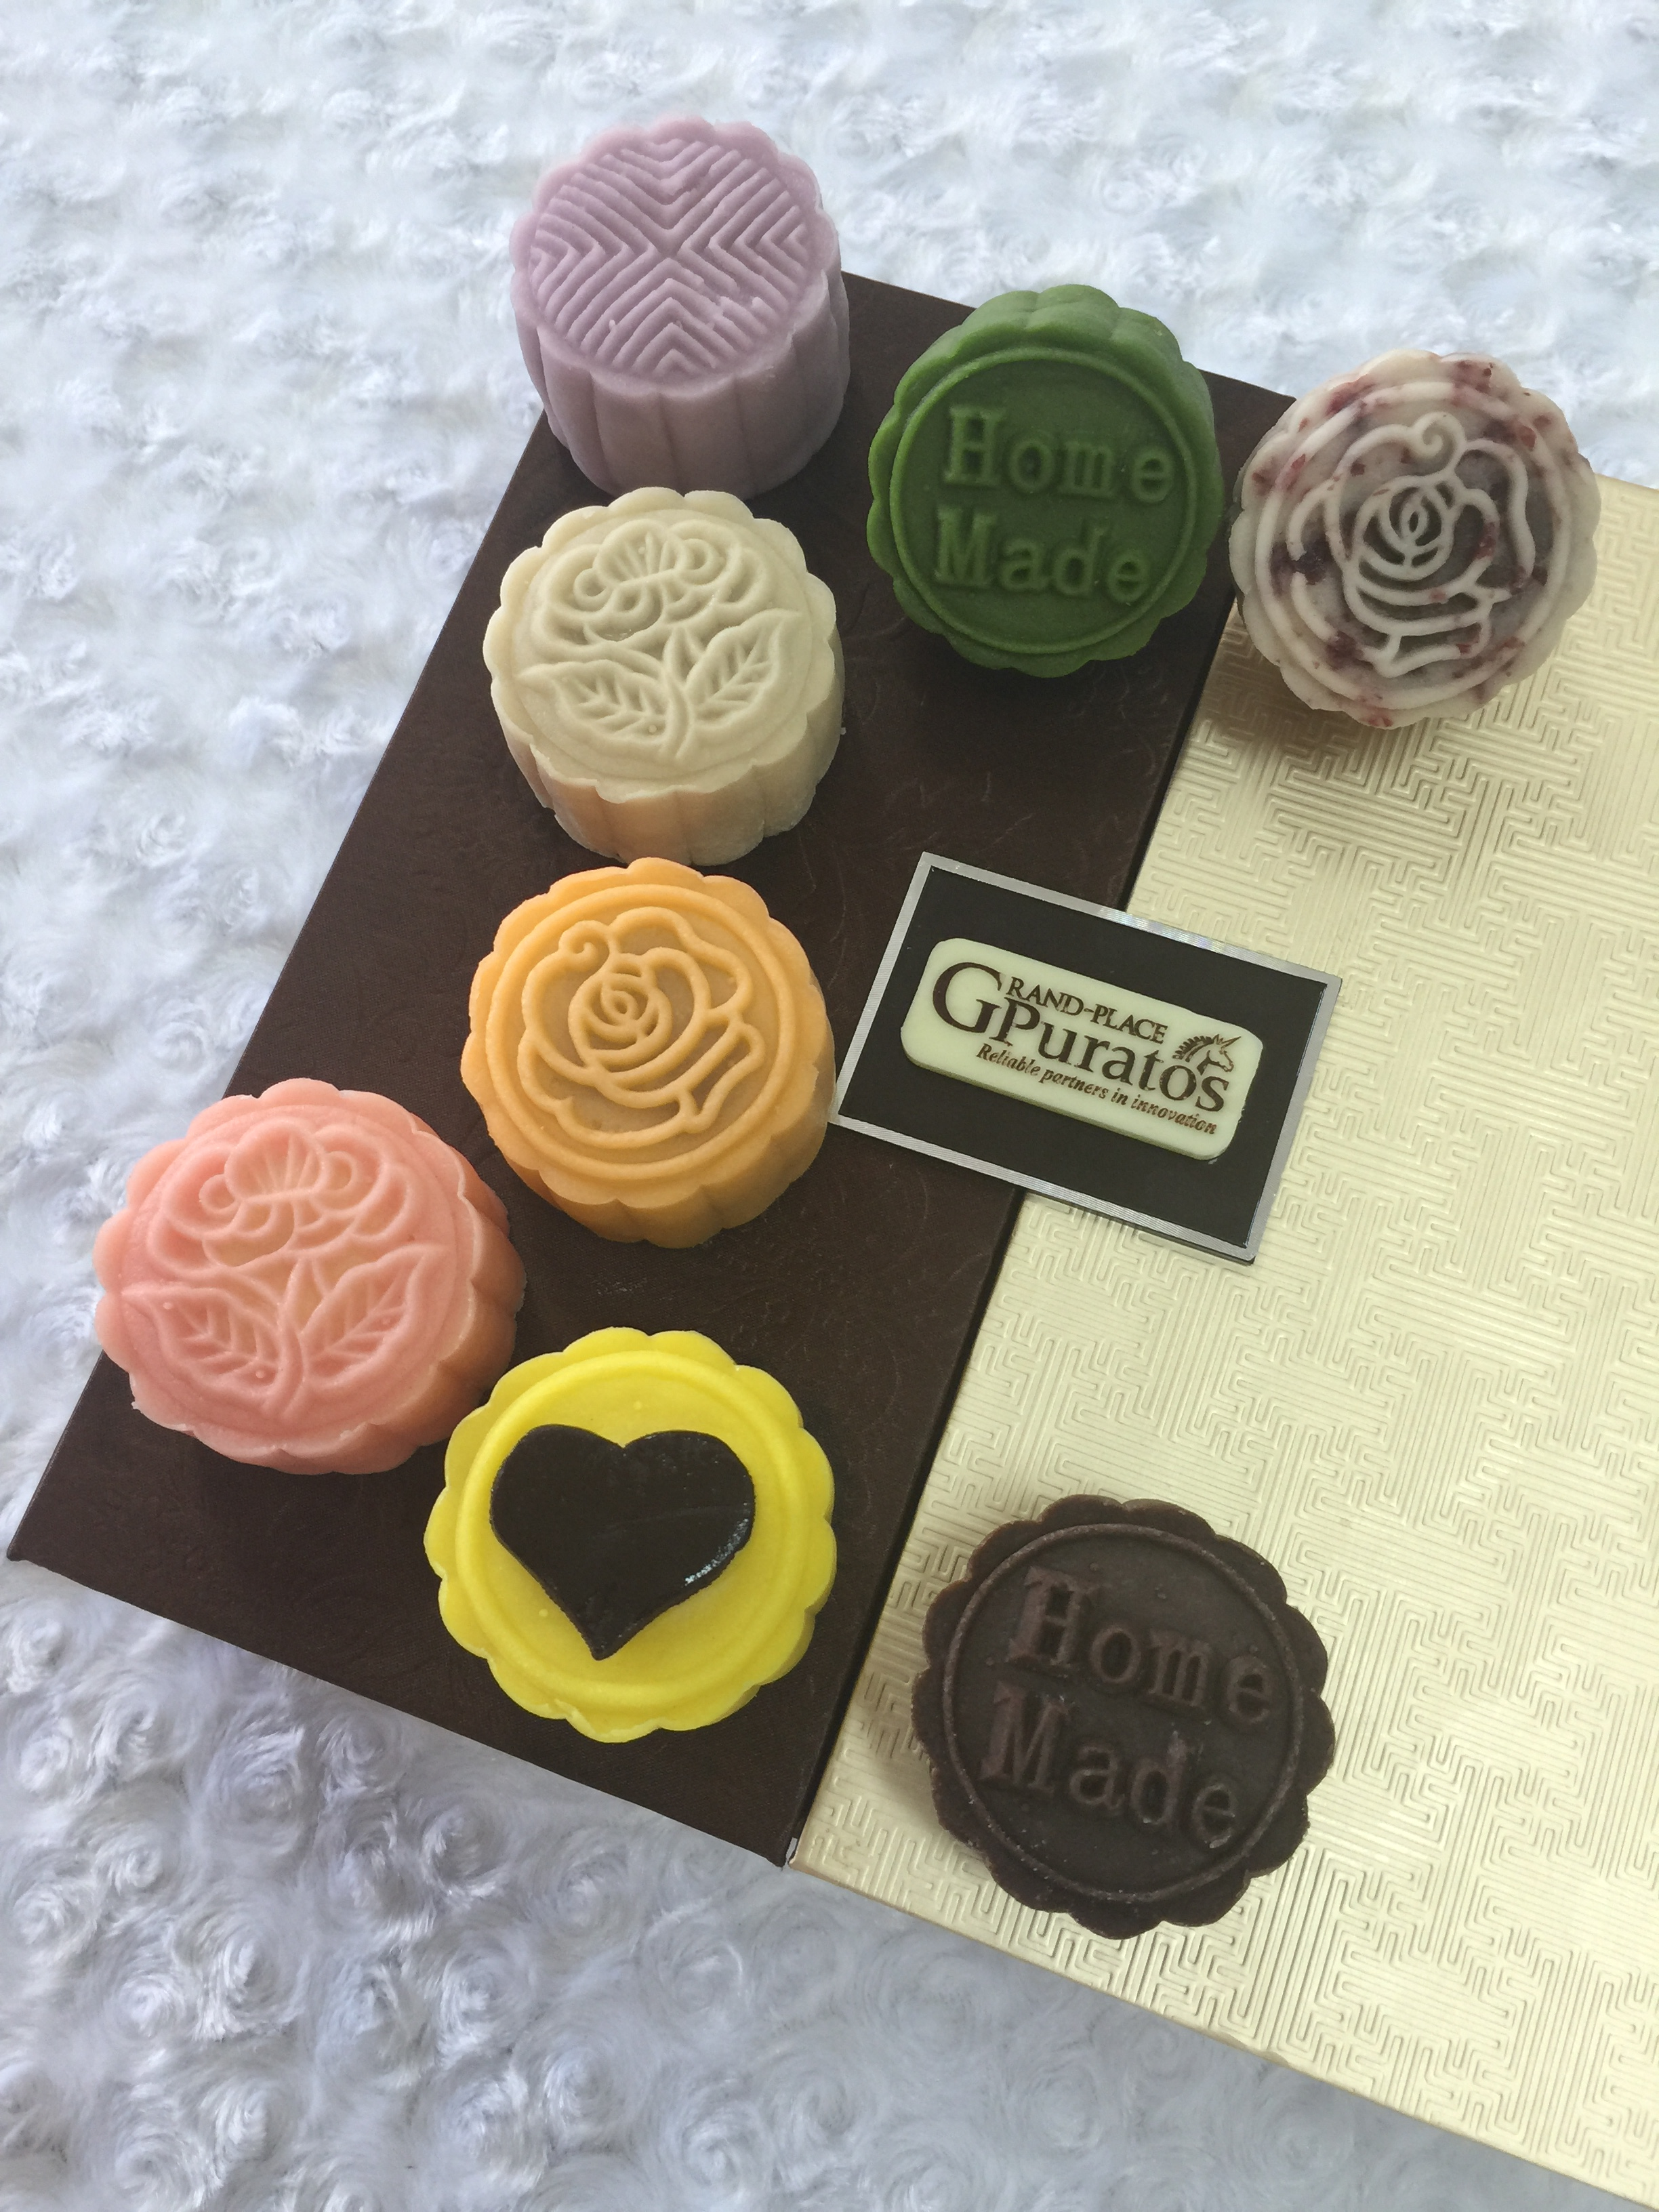 Puratos Grand-Place Indochina - Mooncake Collection 2017